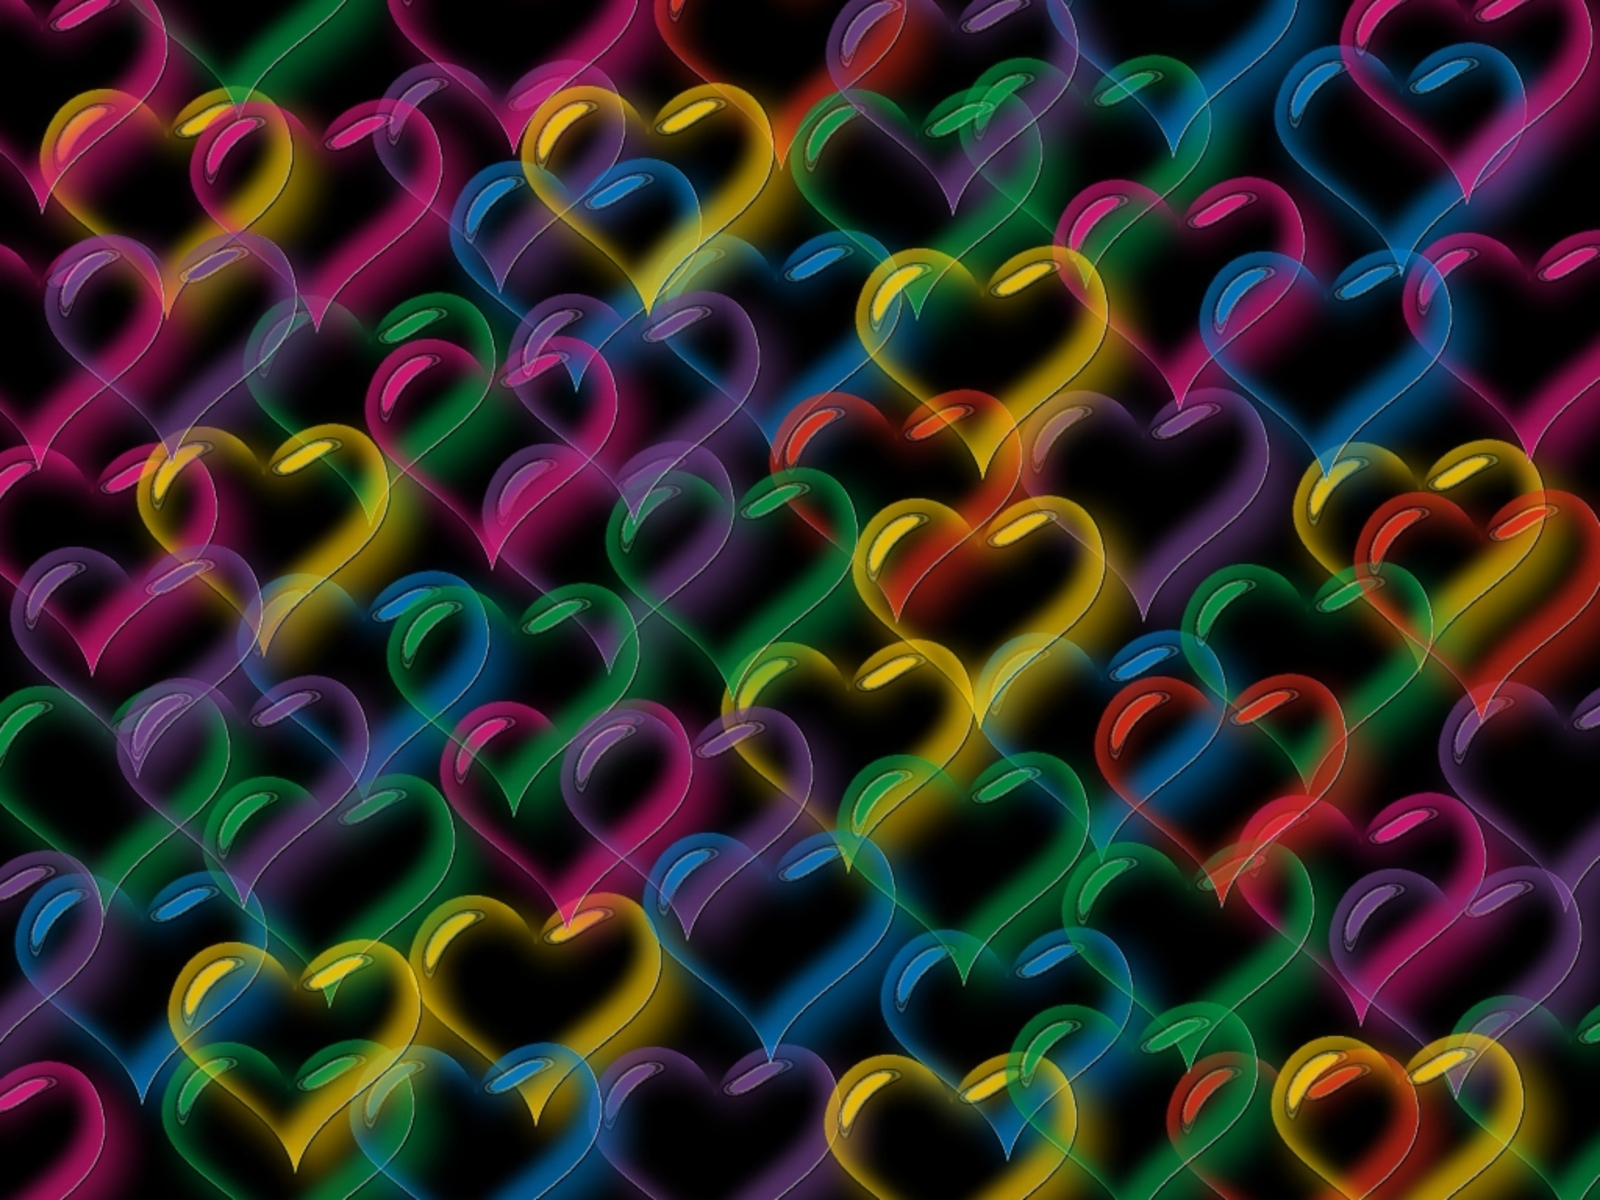 Zedge 3d Moving And Live Wallpapers Neon Colors Rock Images Bubbles Hd Wallpaper And